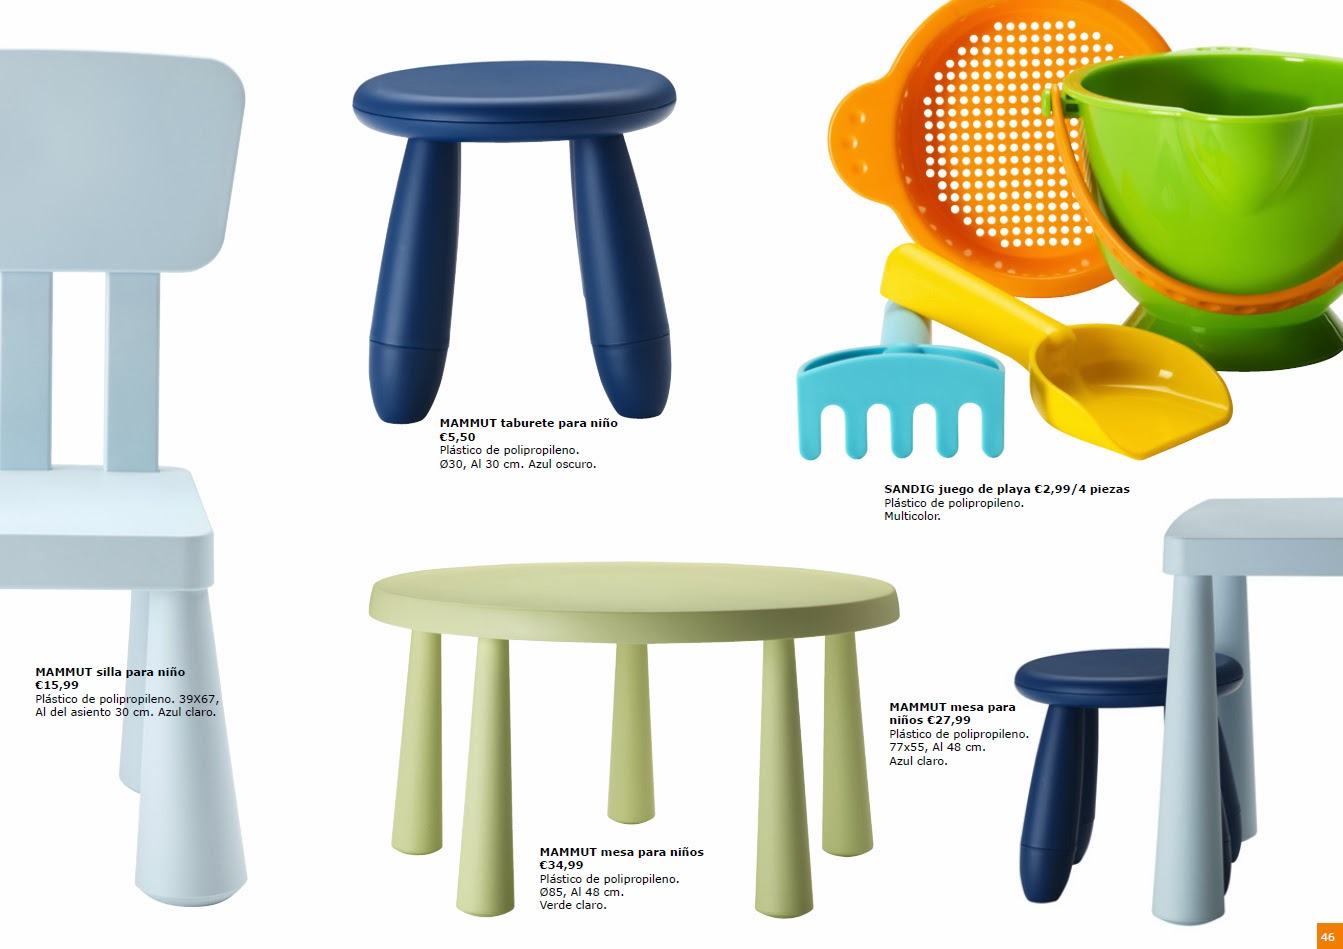 Ikea sillas playa beautiful ikeapiscina with ikea sillas playa how to turn an ikea beach chair - Ikea sillas oficina ninos ...